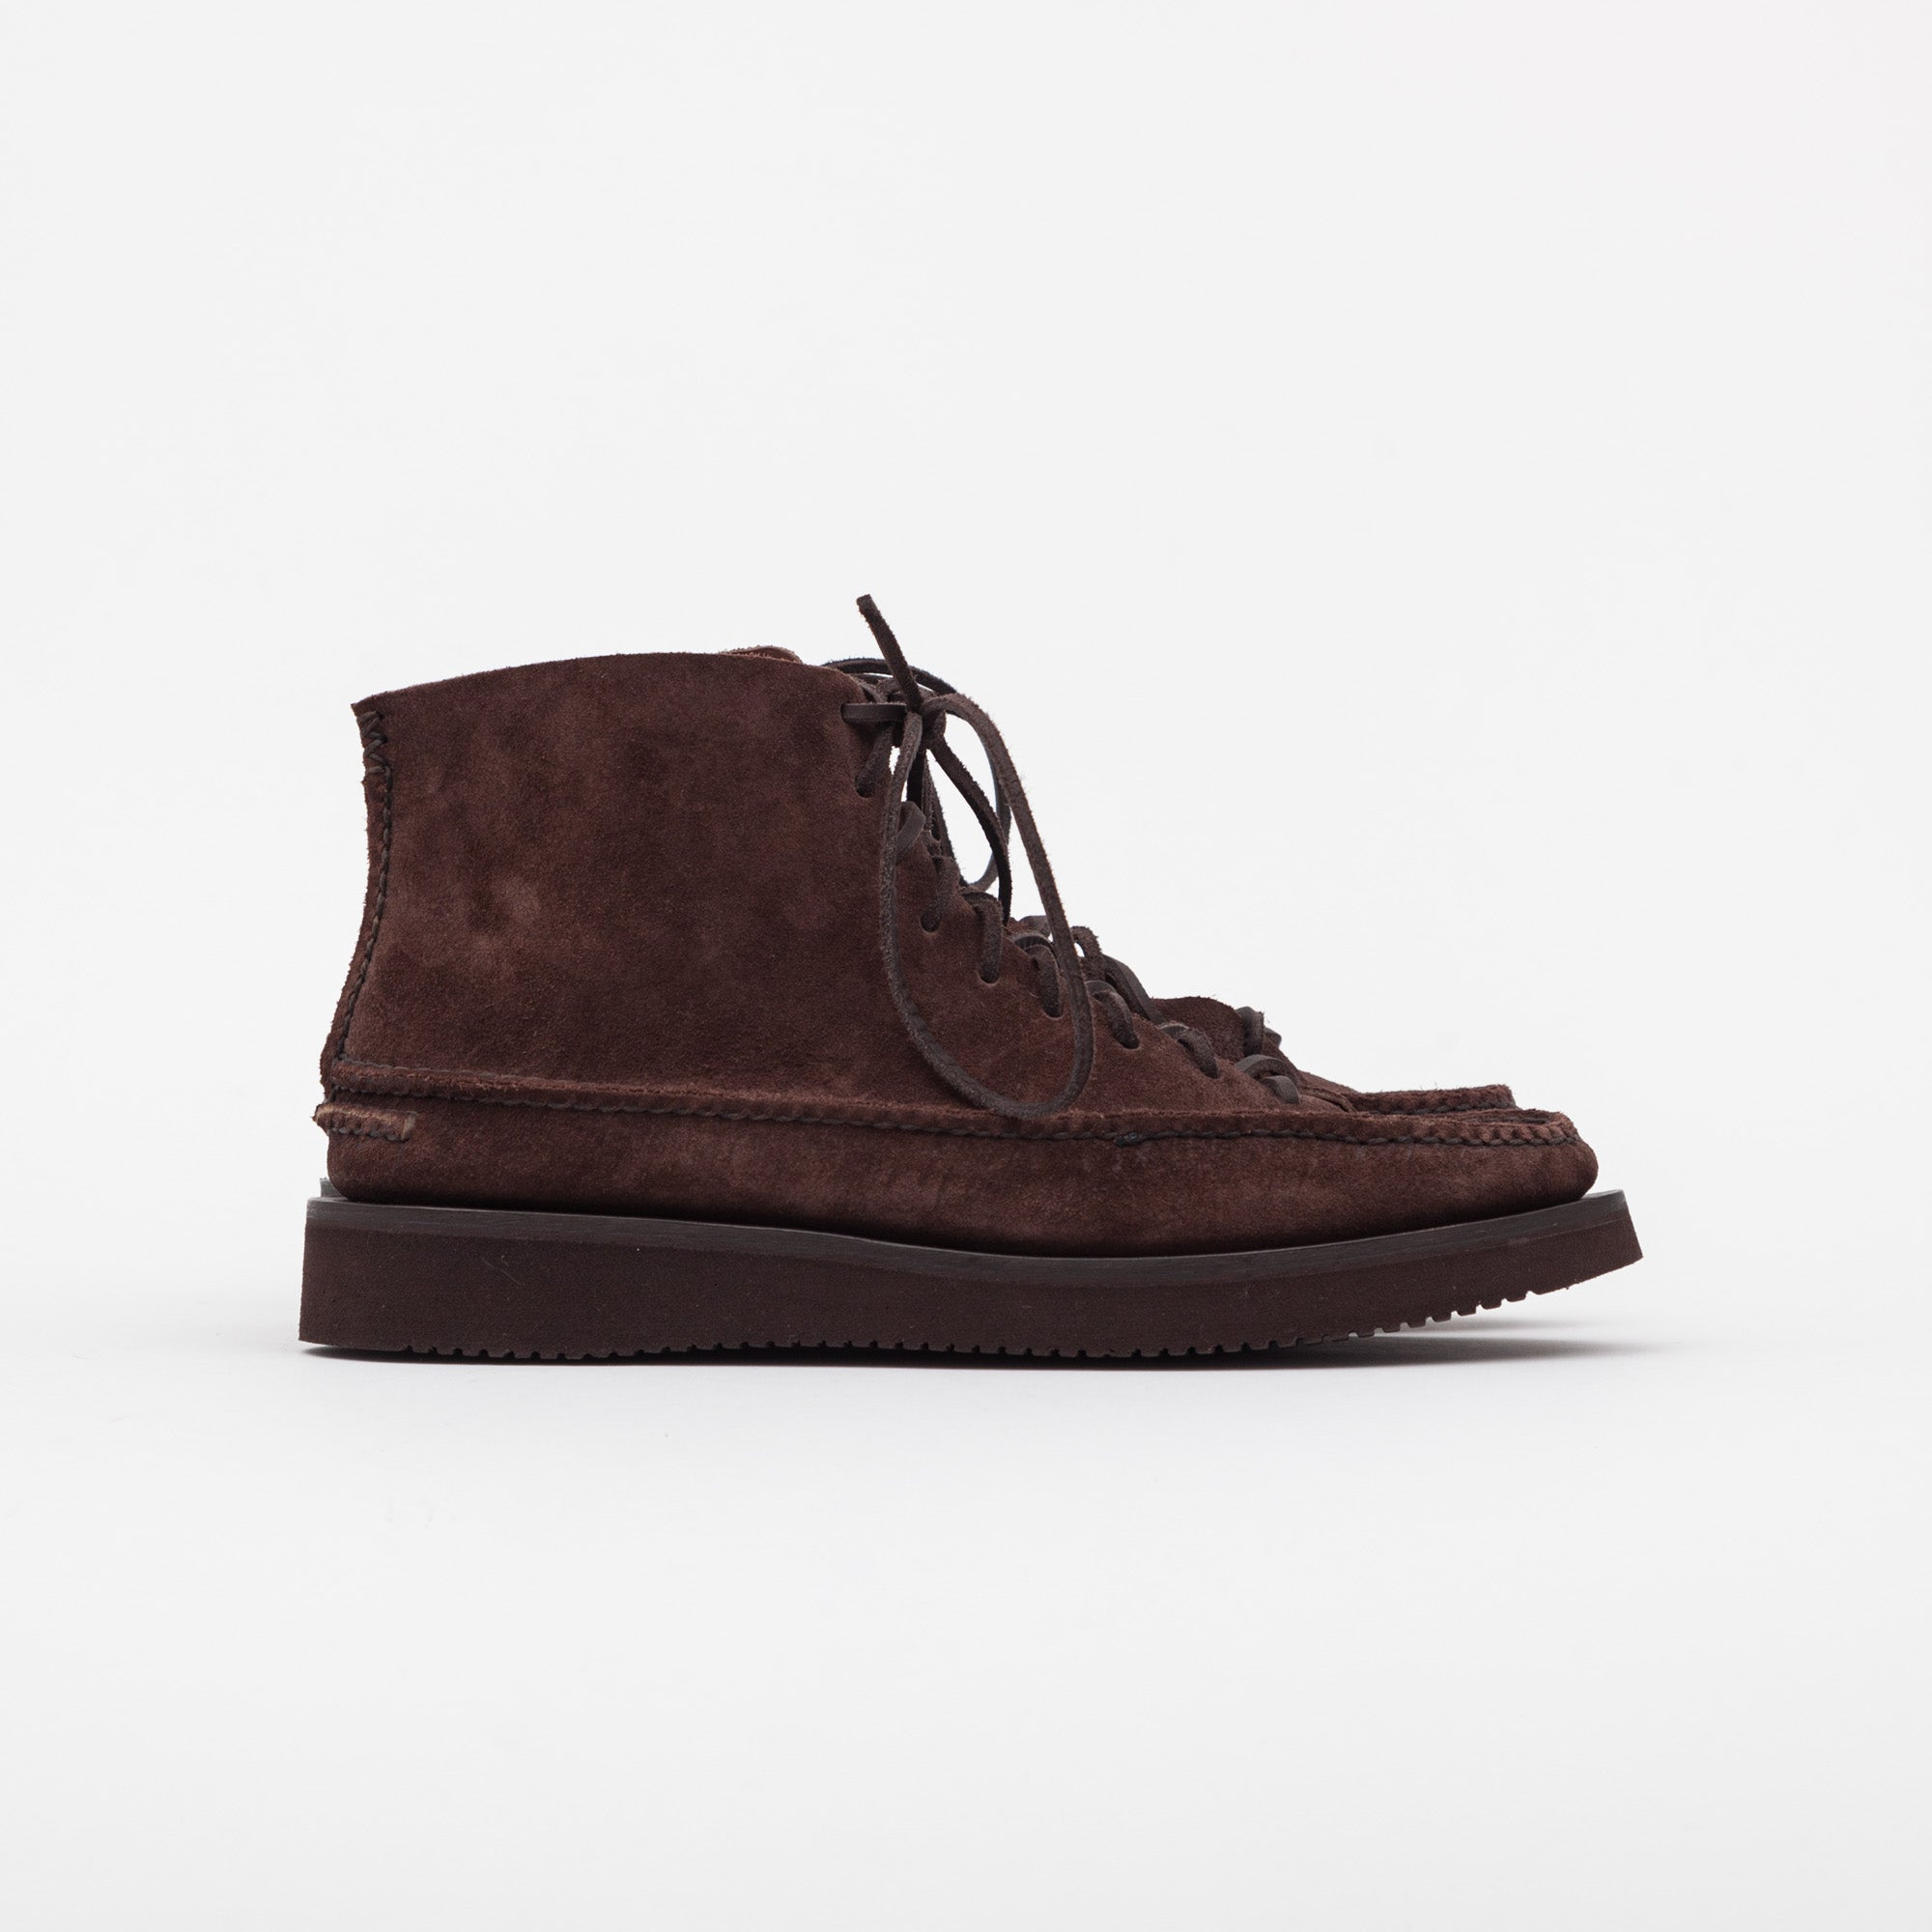 Yuketen Suede Maine Guide Boots